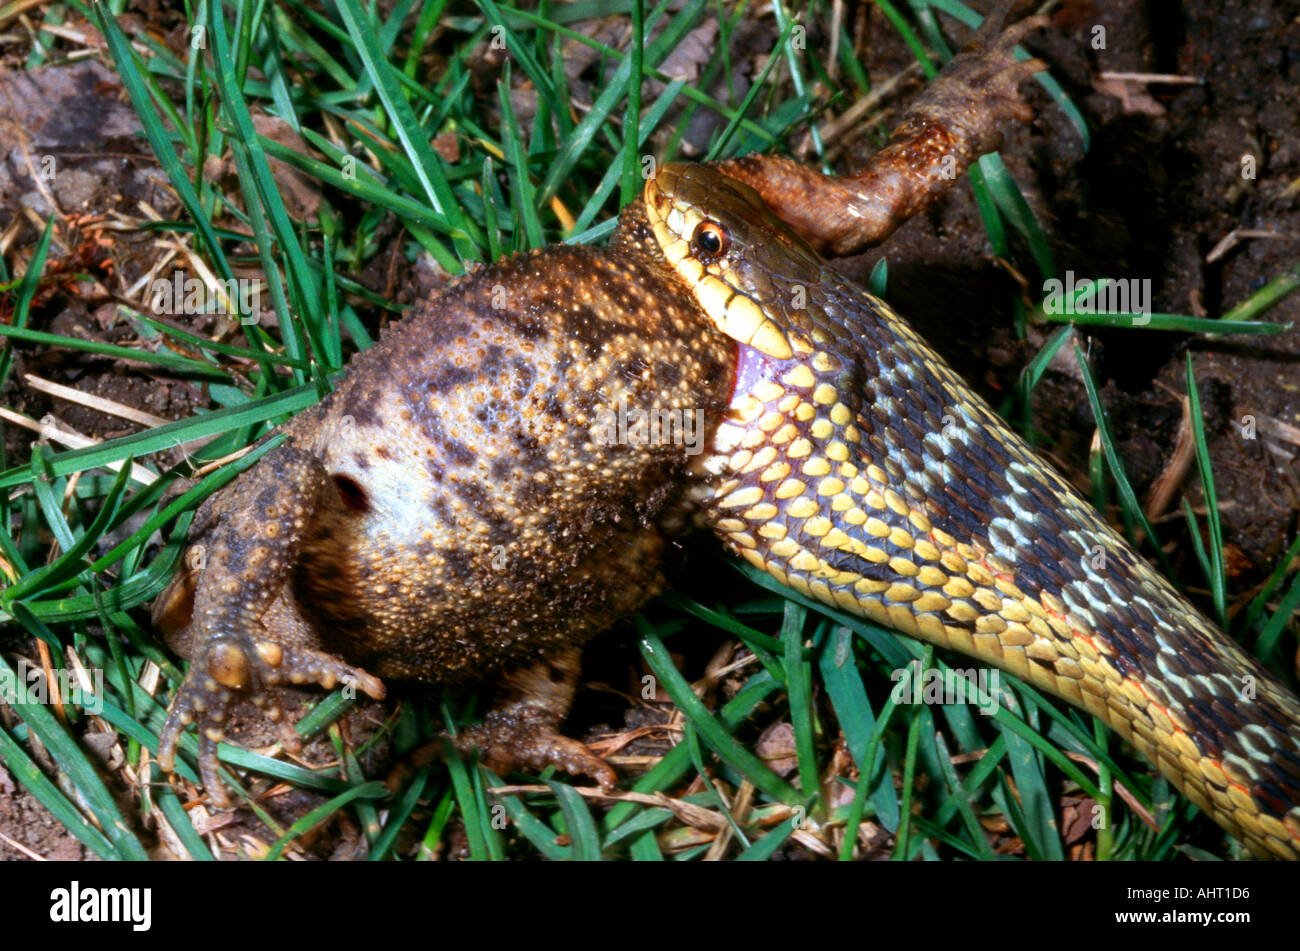 Common Garden Snake In The Process Of Eating A Ground Toad